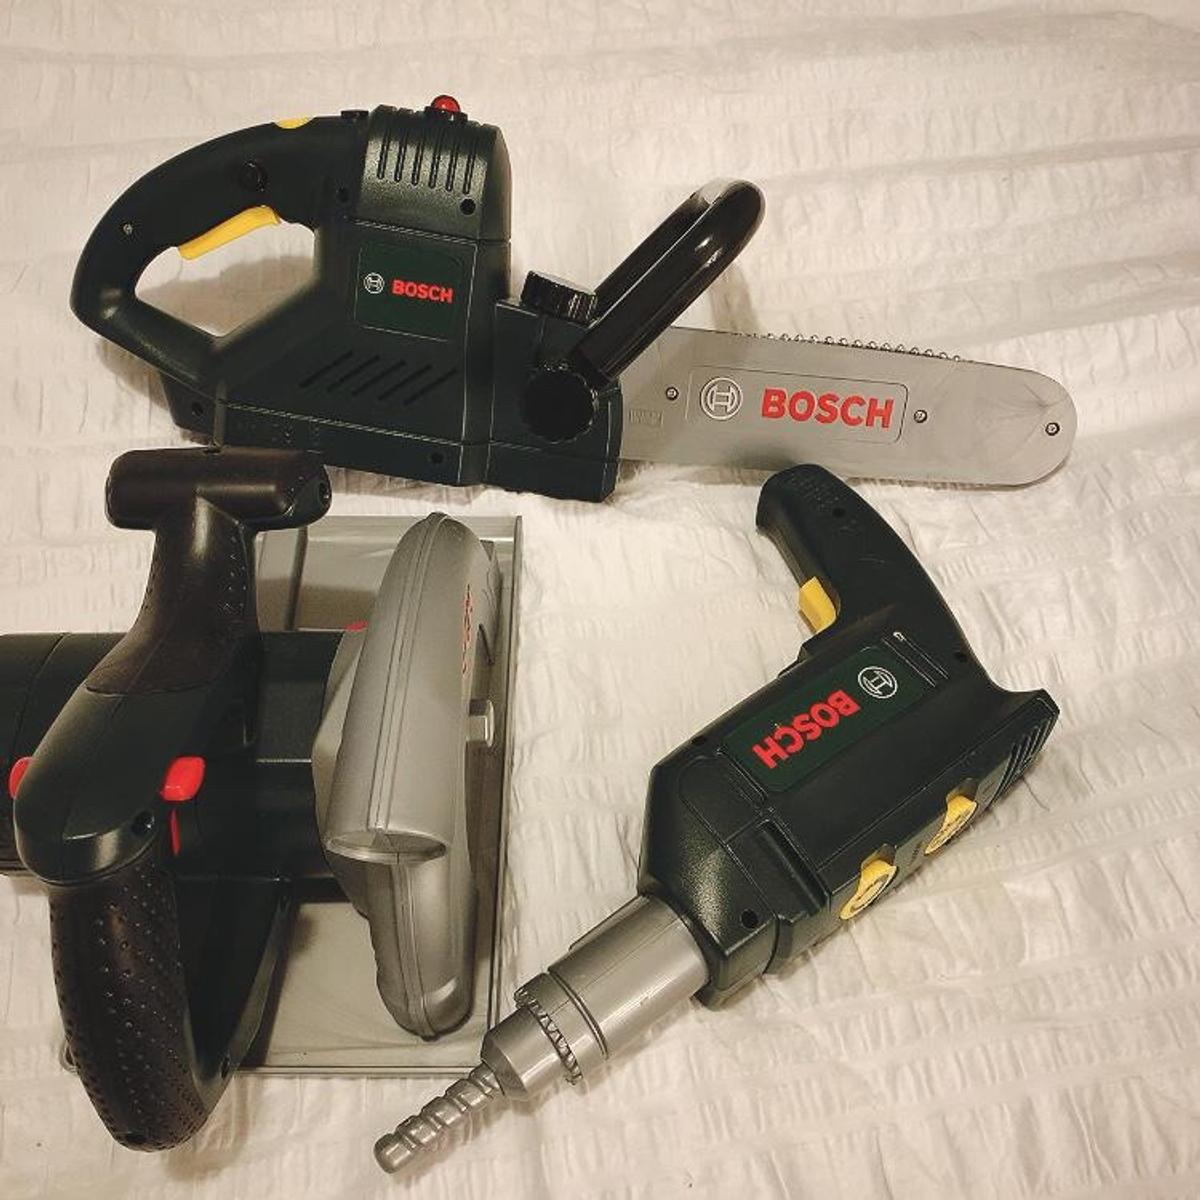 Virtually brand new, set of 3 kids Bosch toys, work on batteries and make noises. Drill, chainsaw and circular saw